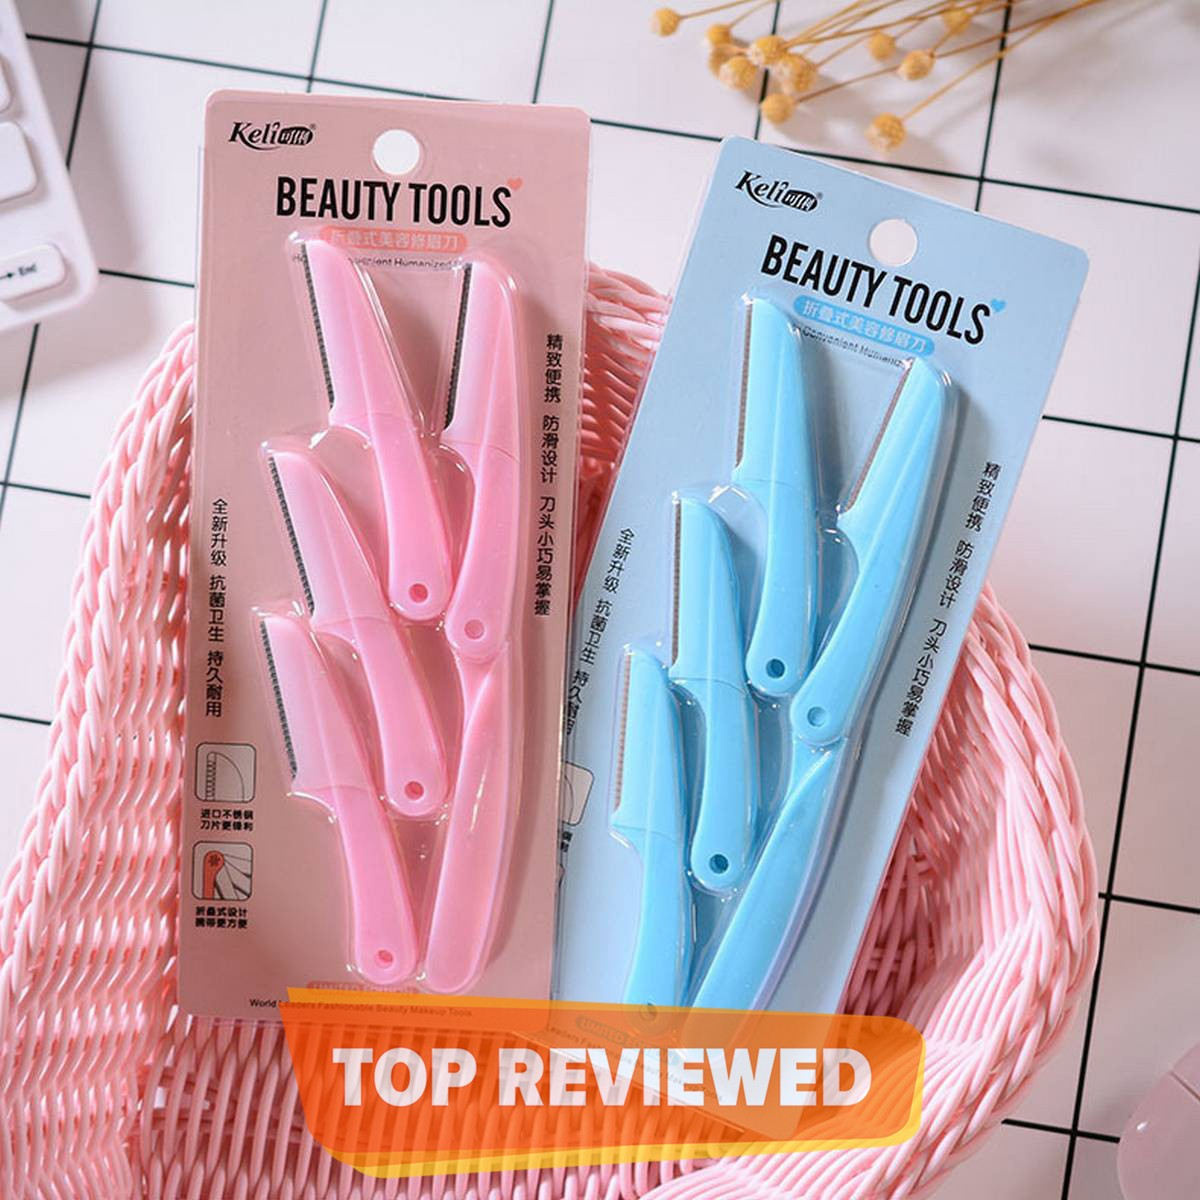 Tinkle Eyebrow Razor Pack of 4 Foldable Eyebrow Facial Hair Removal, Shaper, and Trimmer in New Design (Blue & Pink).